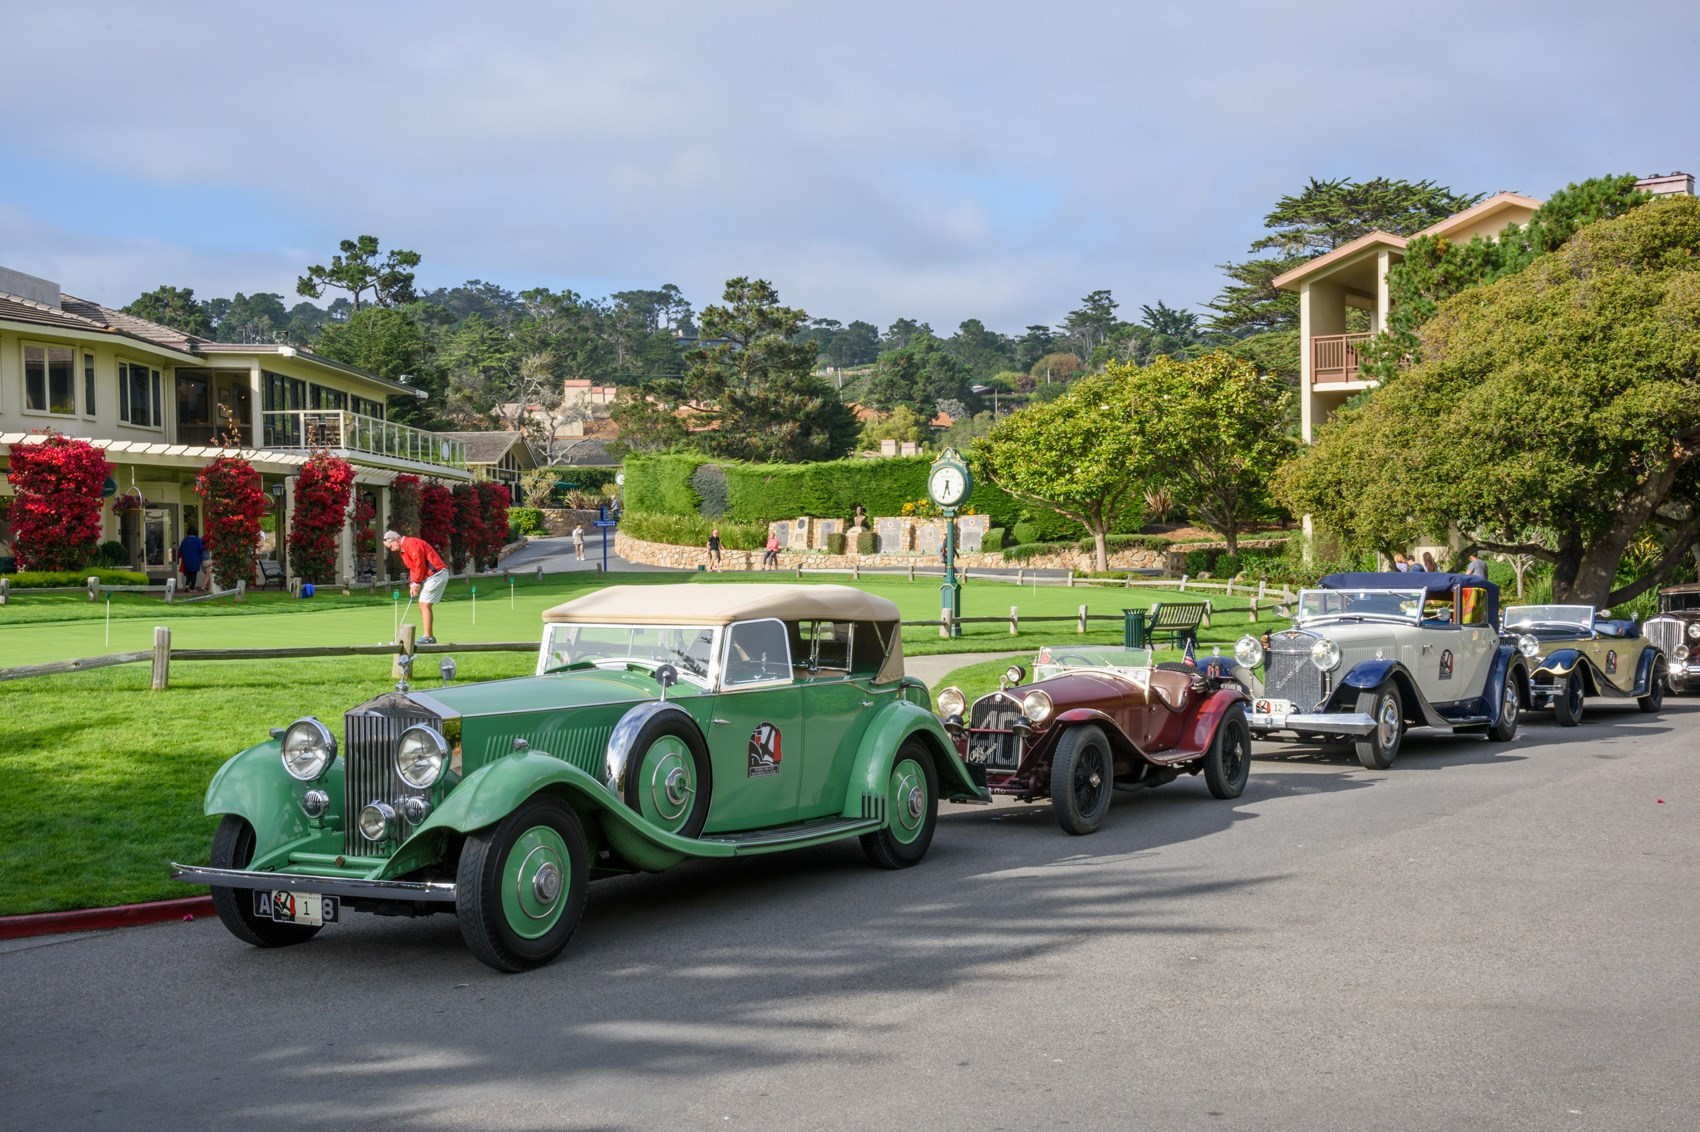 Lining up for the Prestigious Concours d'Elegance at Pebble Beach Courtesy of CAR Magazine